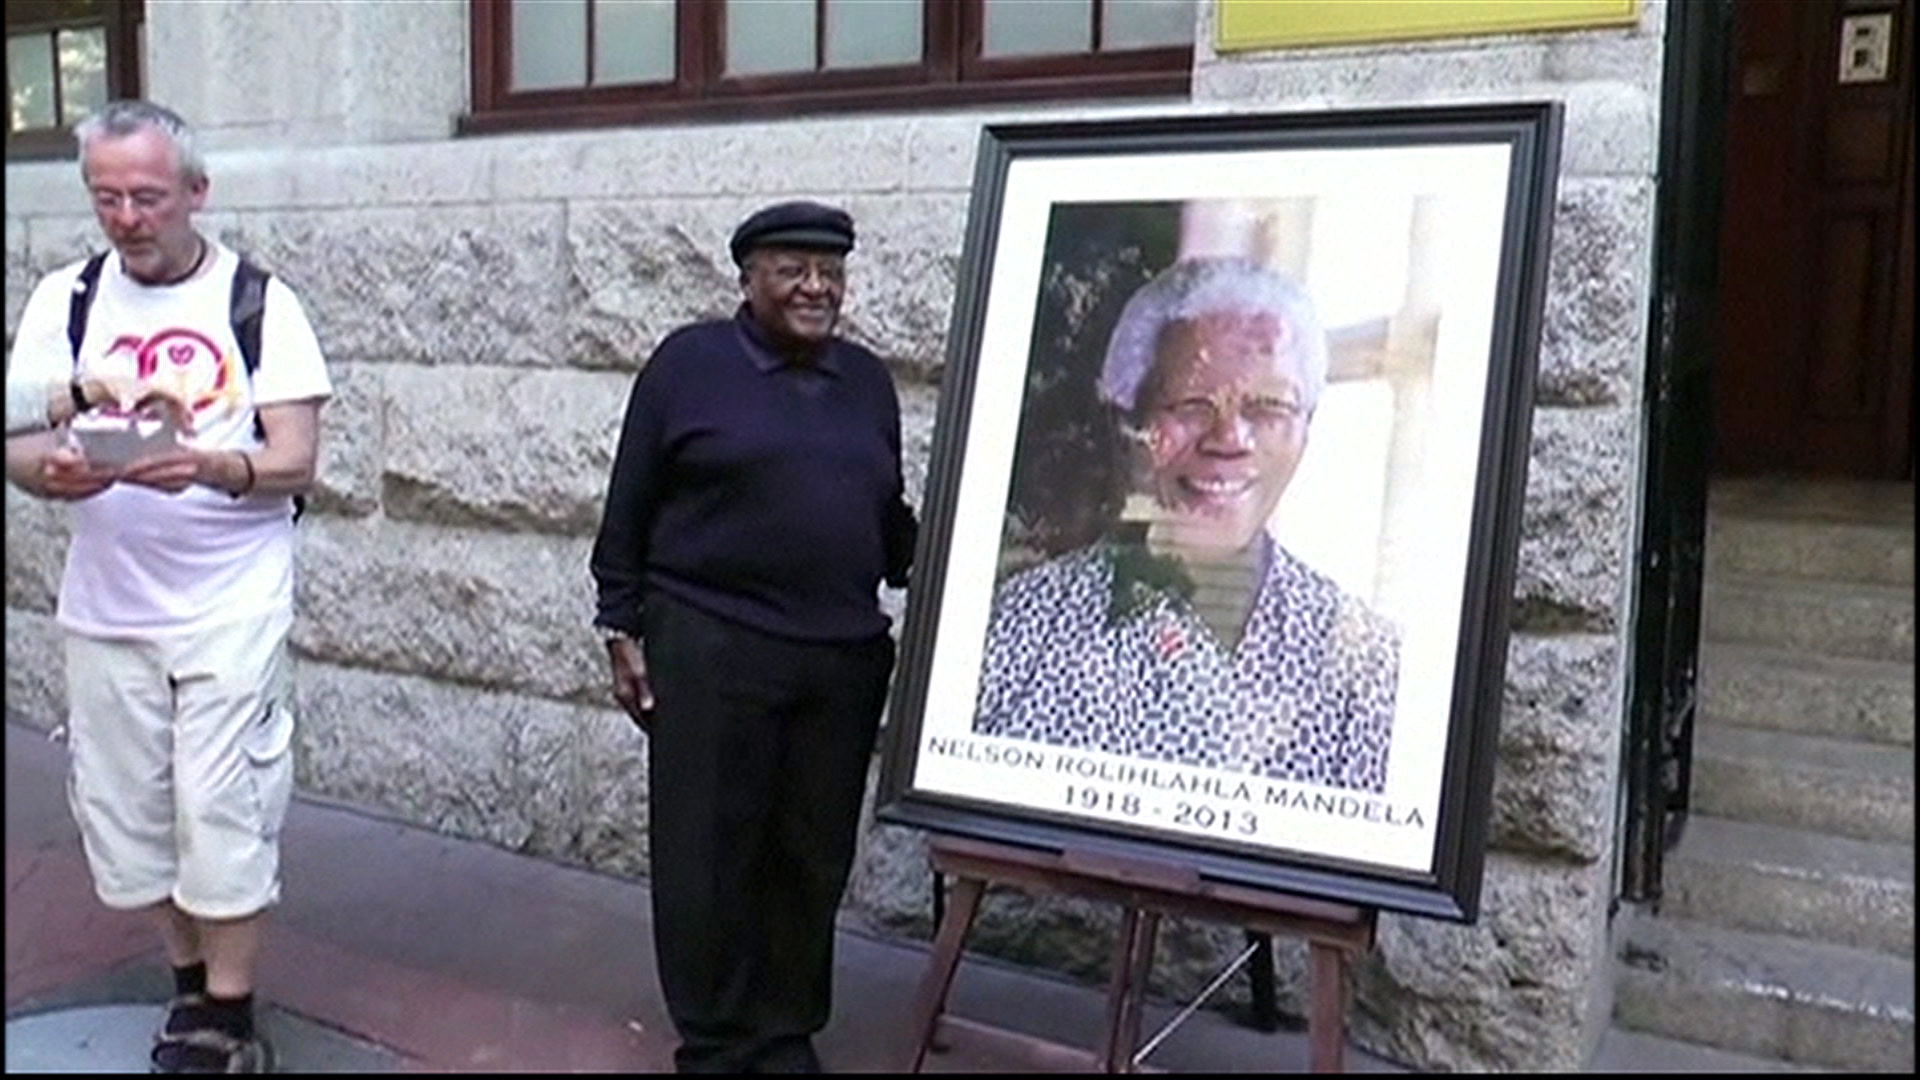 Desmond Tutu reflects on Mandela's legacy